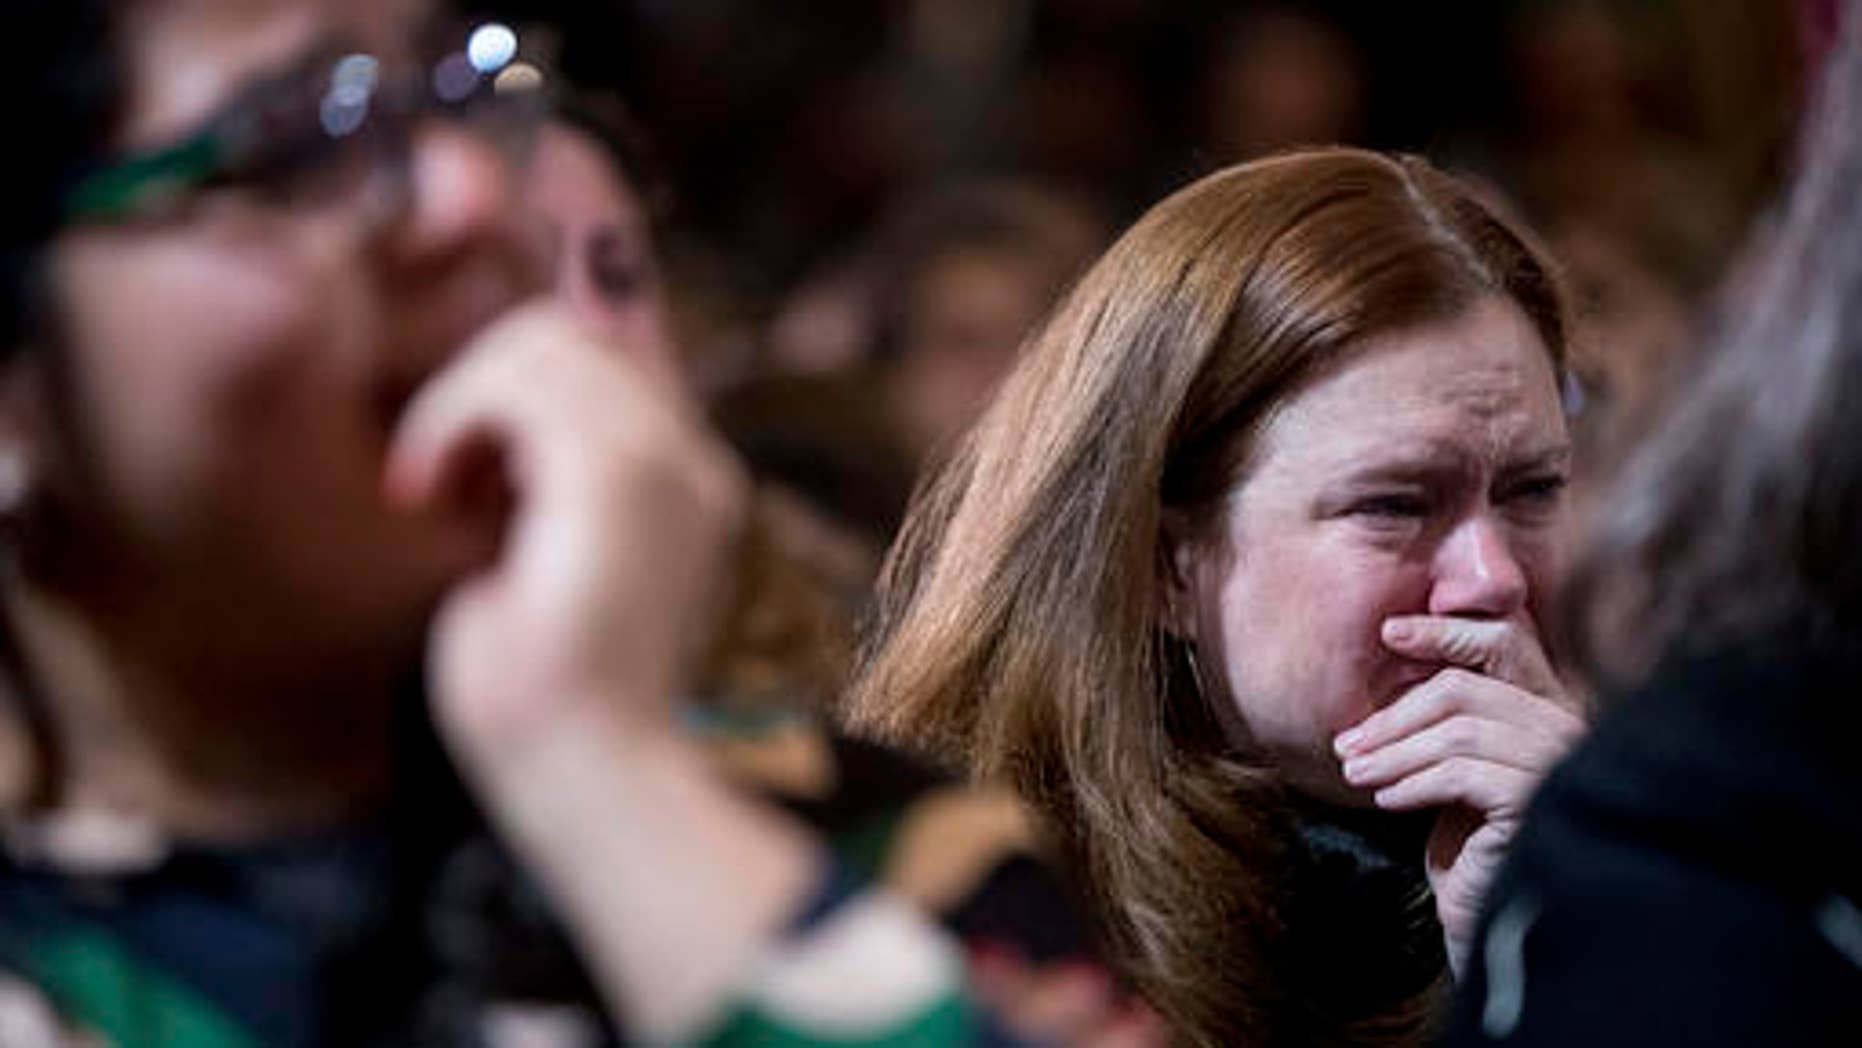 FILE - Staff and supporters listen as Democratic presidential candidate Hillary Clinton speaks at the New Yorker Hotel in New York, Wednesday, Nov. 9, 2016, where she conceded her defeat to Republican Donald Trump after the hard-fought presidential election.